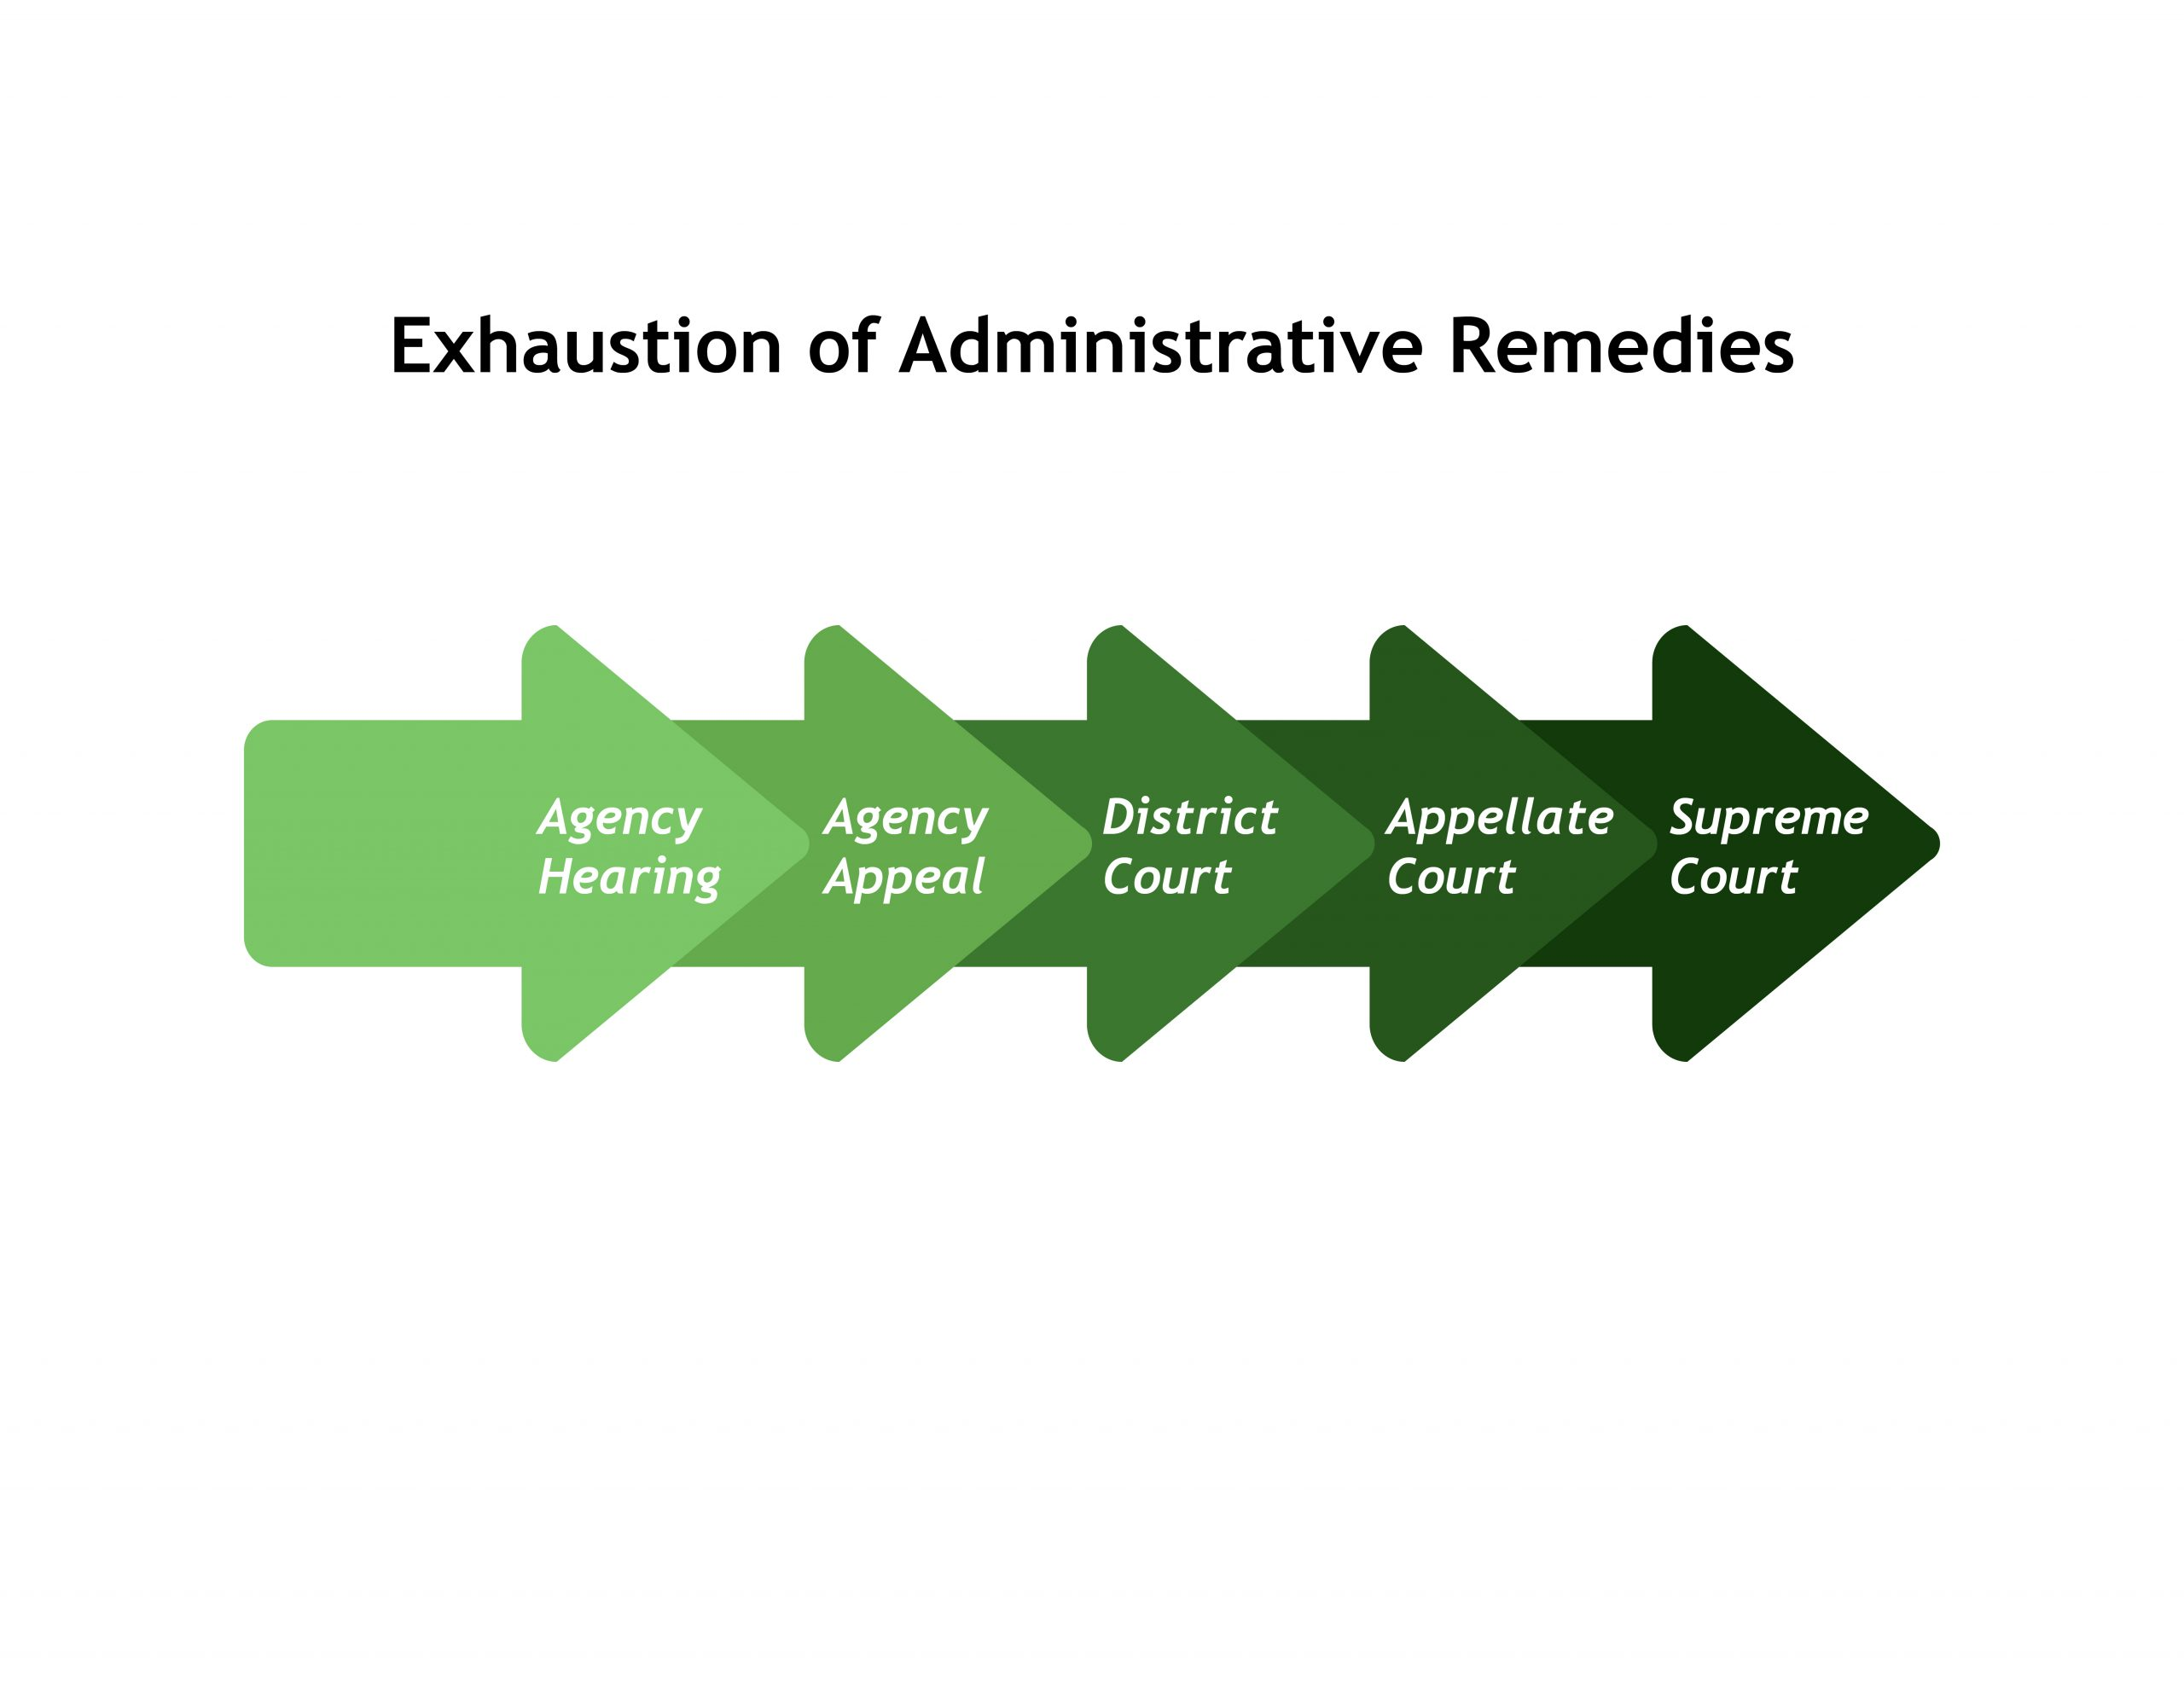 Graphic showing required steps in exhaustion of administrative remedies